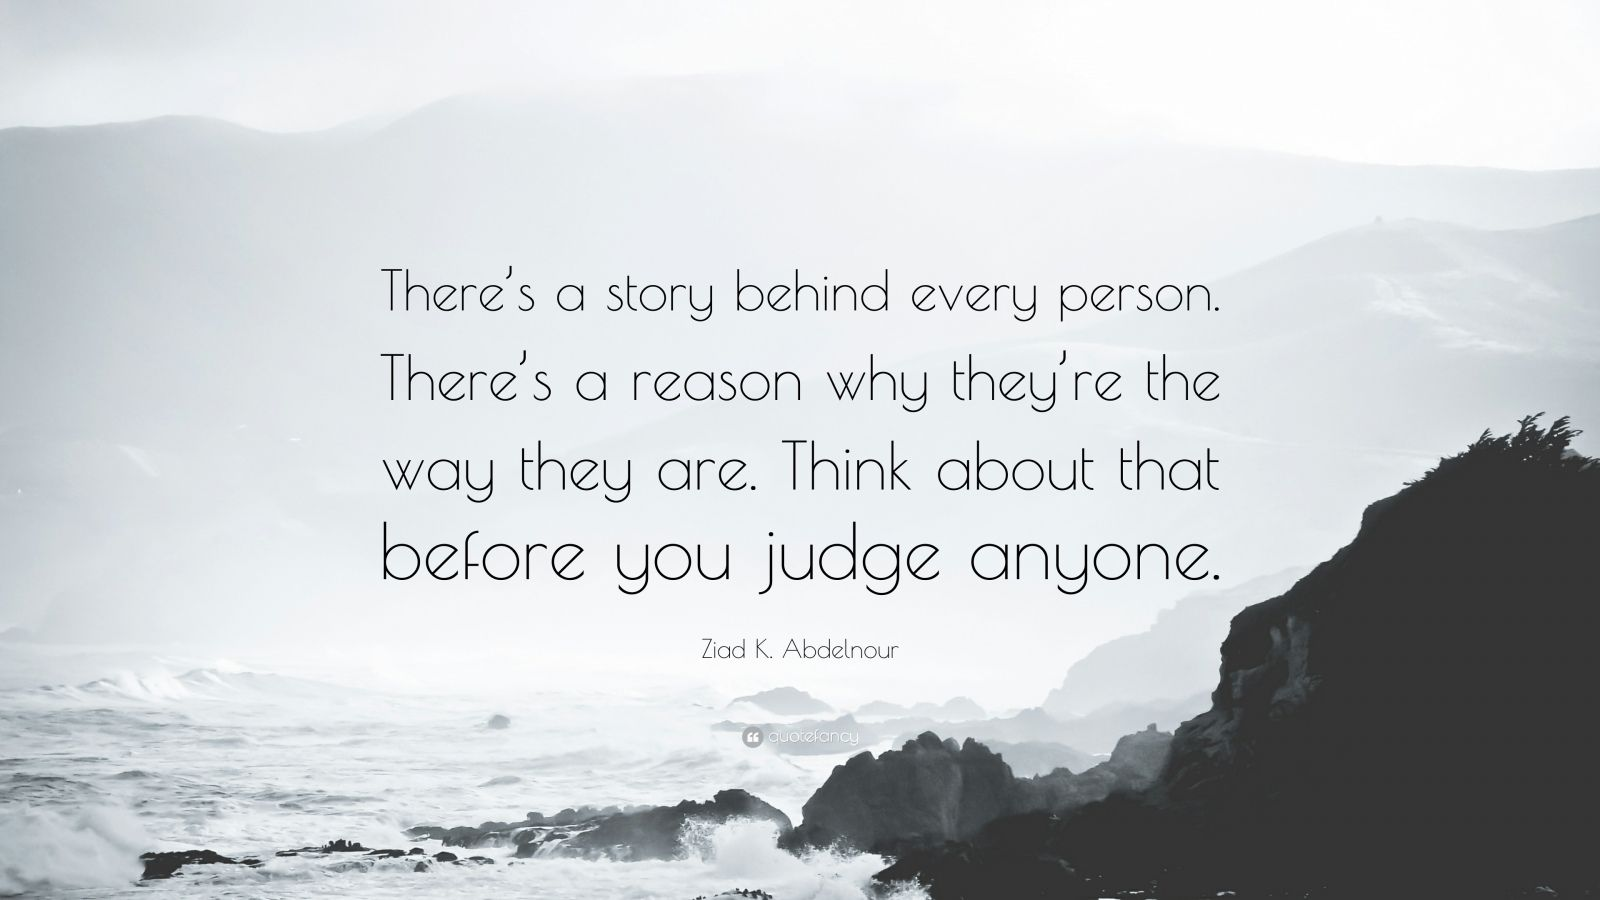 """Ziad K. Abdelnour Quote: """"There's a story behind every person. There's a reason why they're the way they are. Think about that before you judge anyone."""""""